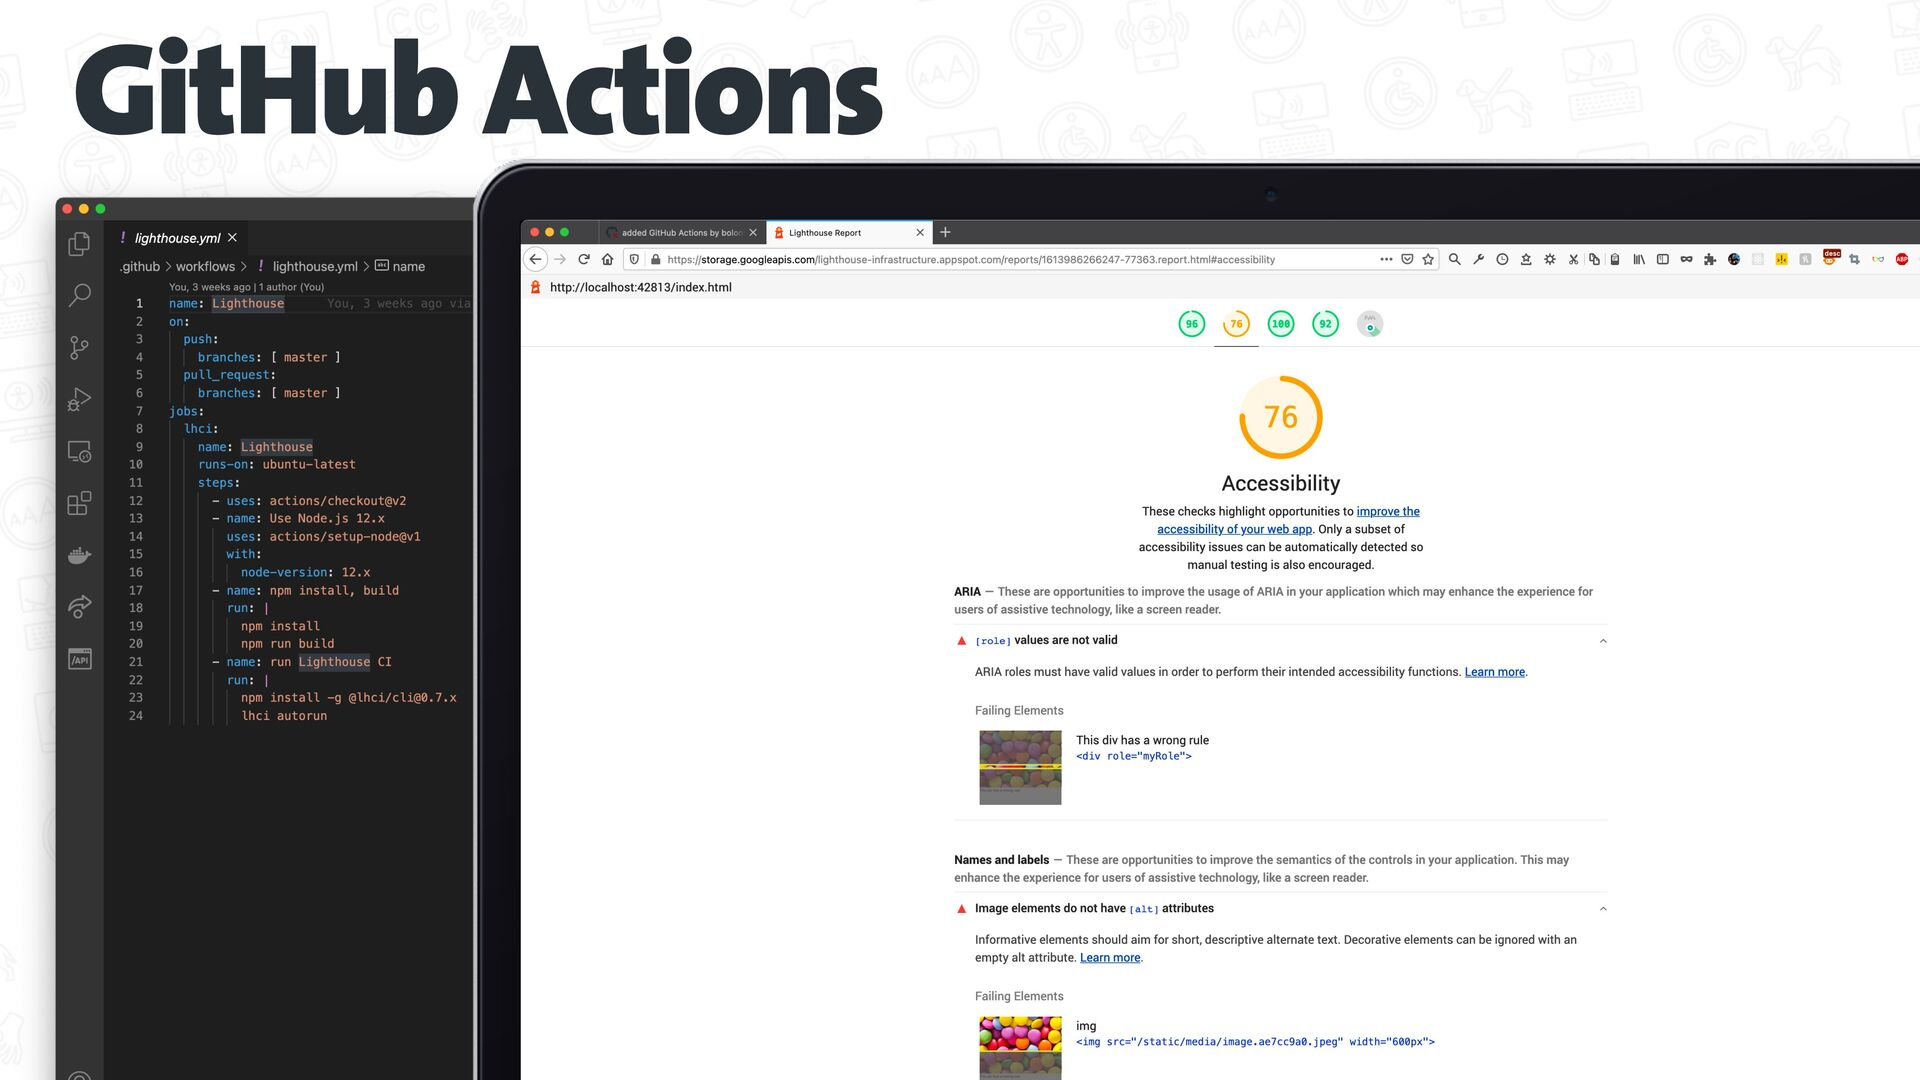 axe chrome extension https://www.deque.com/axe/